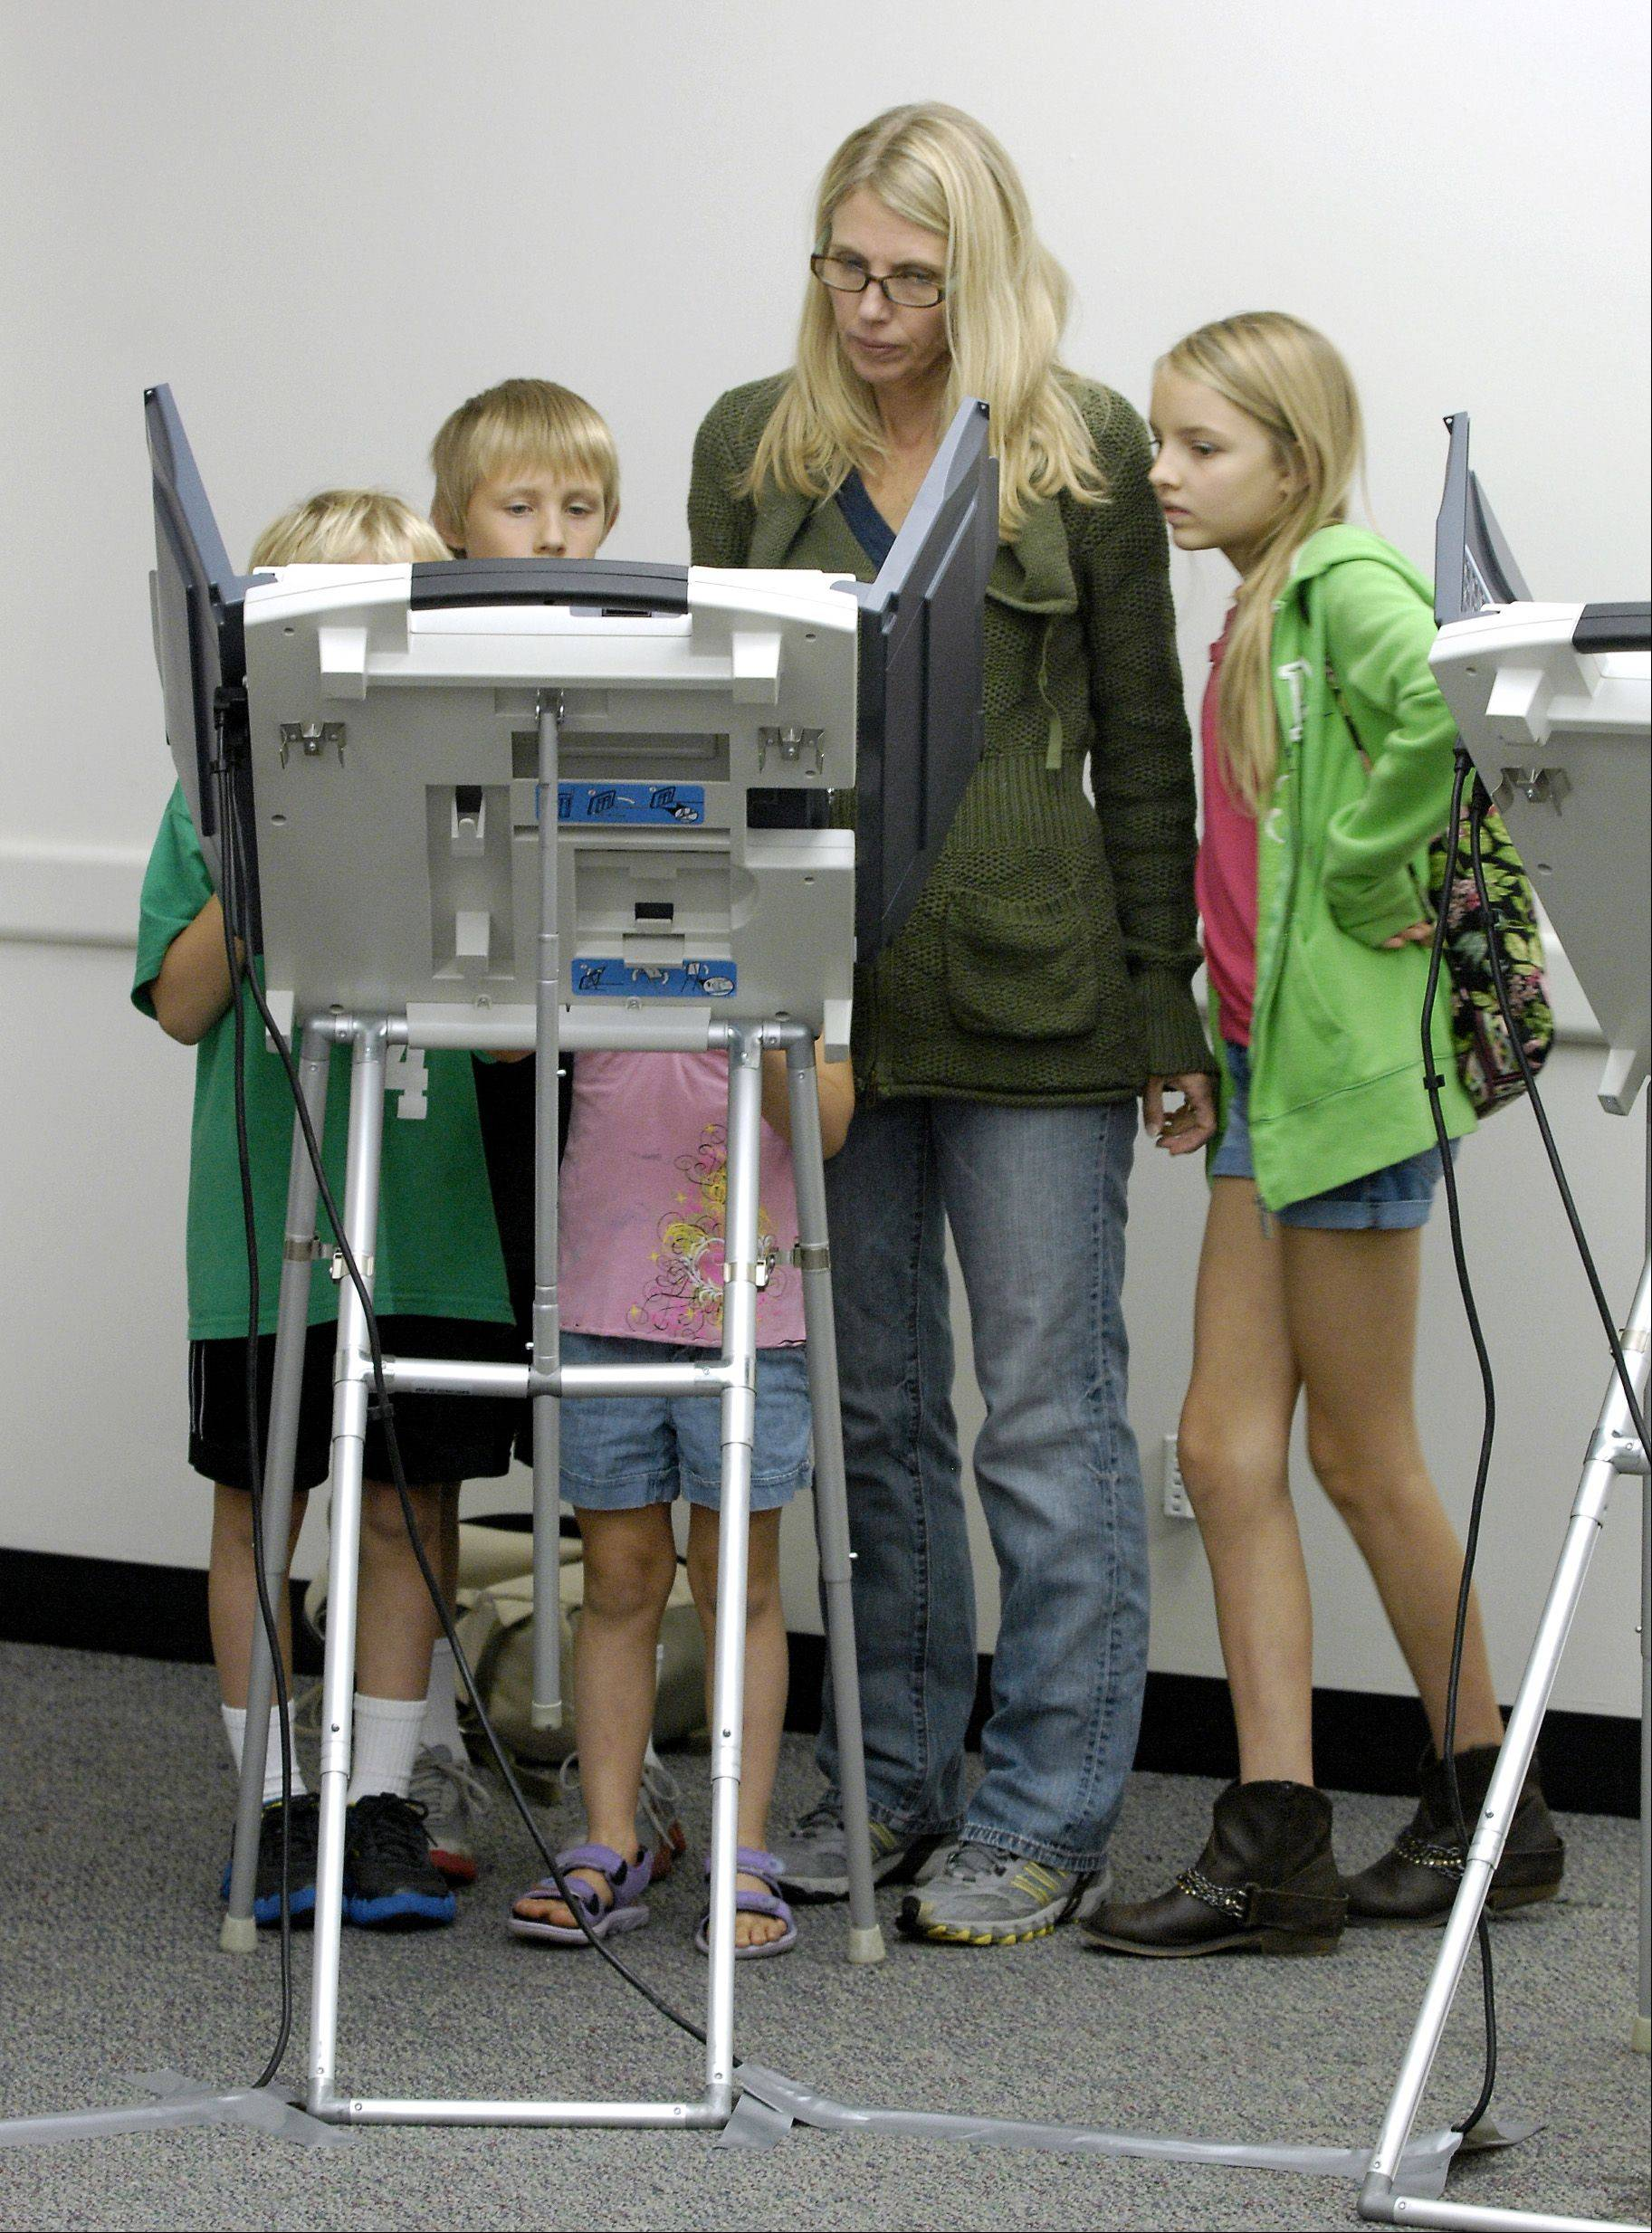 Laura Penosky of Wheaton, with some of her children looking on, took advantage of the first day of early voting by casting her ballot Oct. 22 at the DuPage County government building in Wheaton. Penosky's daughter, Lydia Penosky, 21, voted for the first time at an adjoining booth.